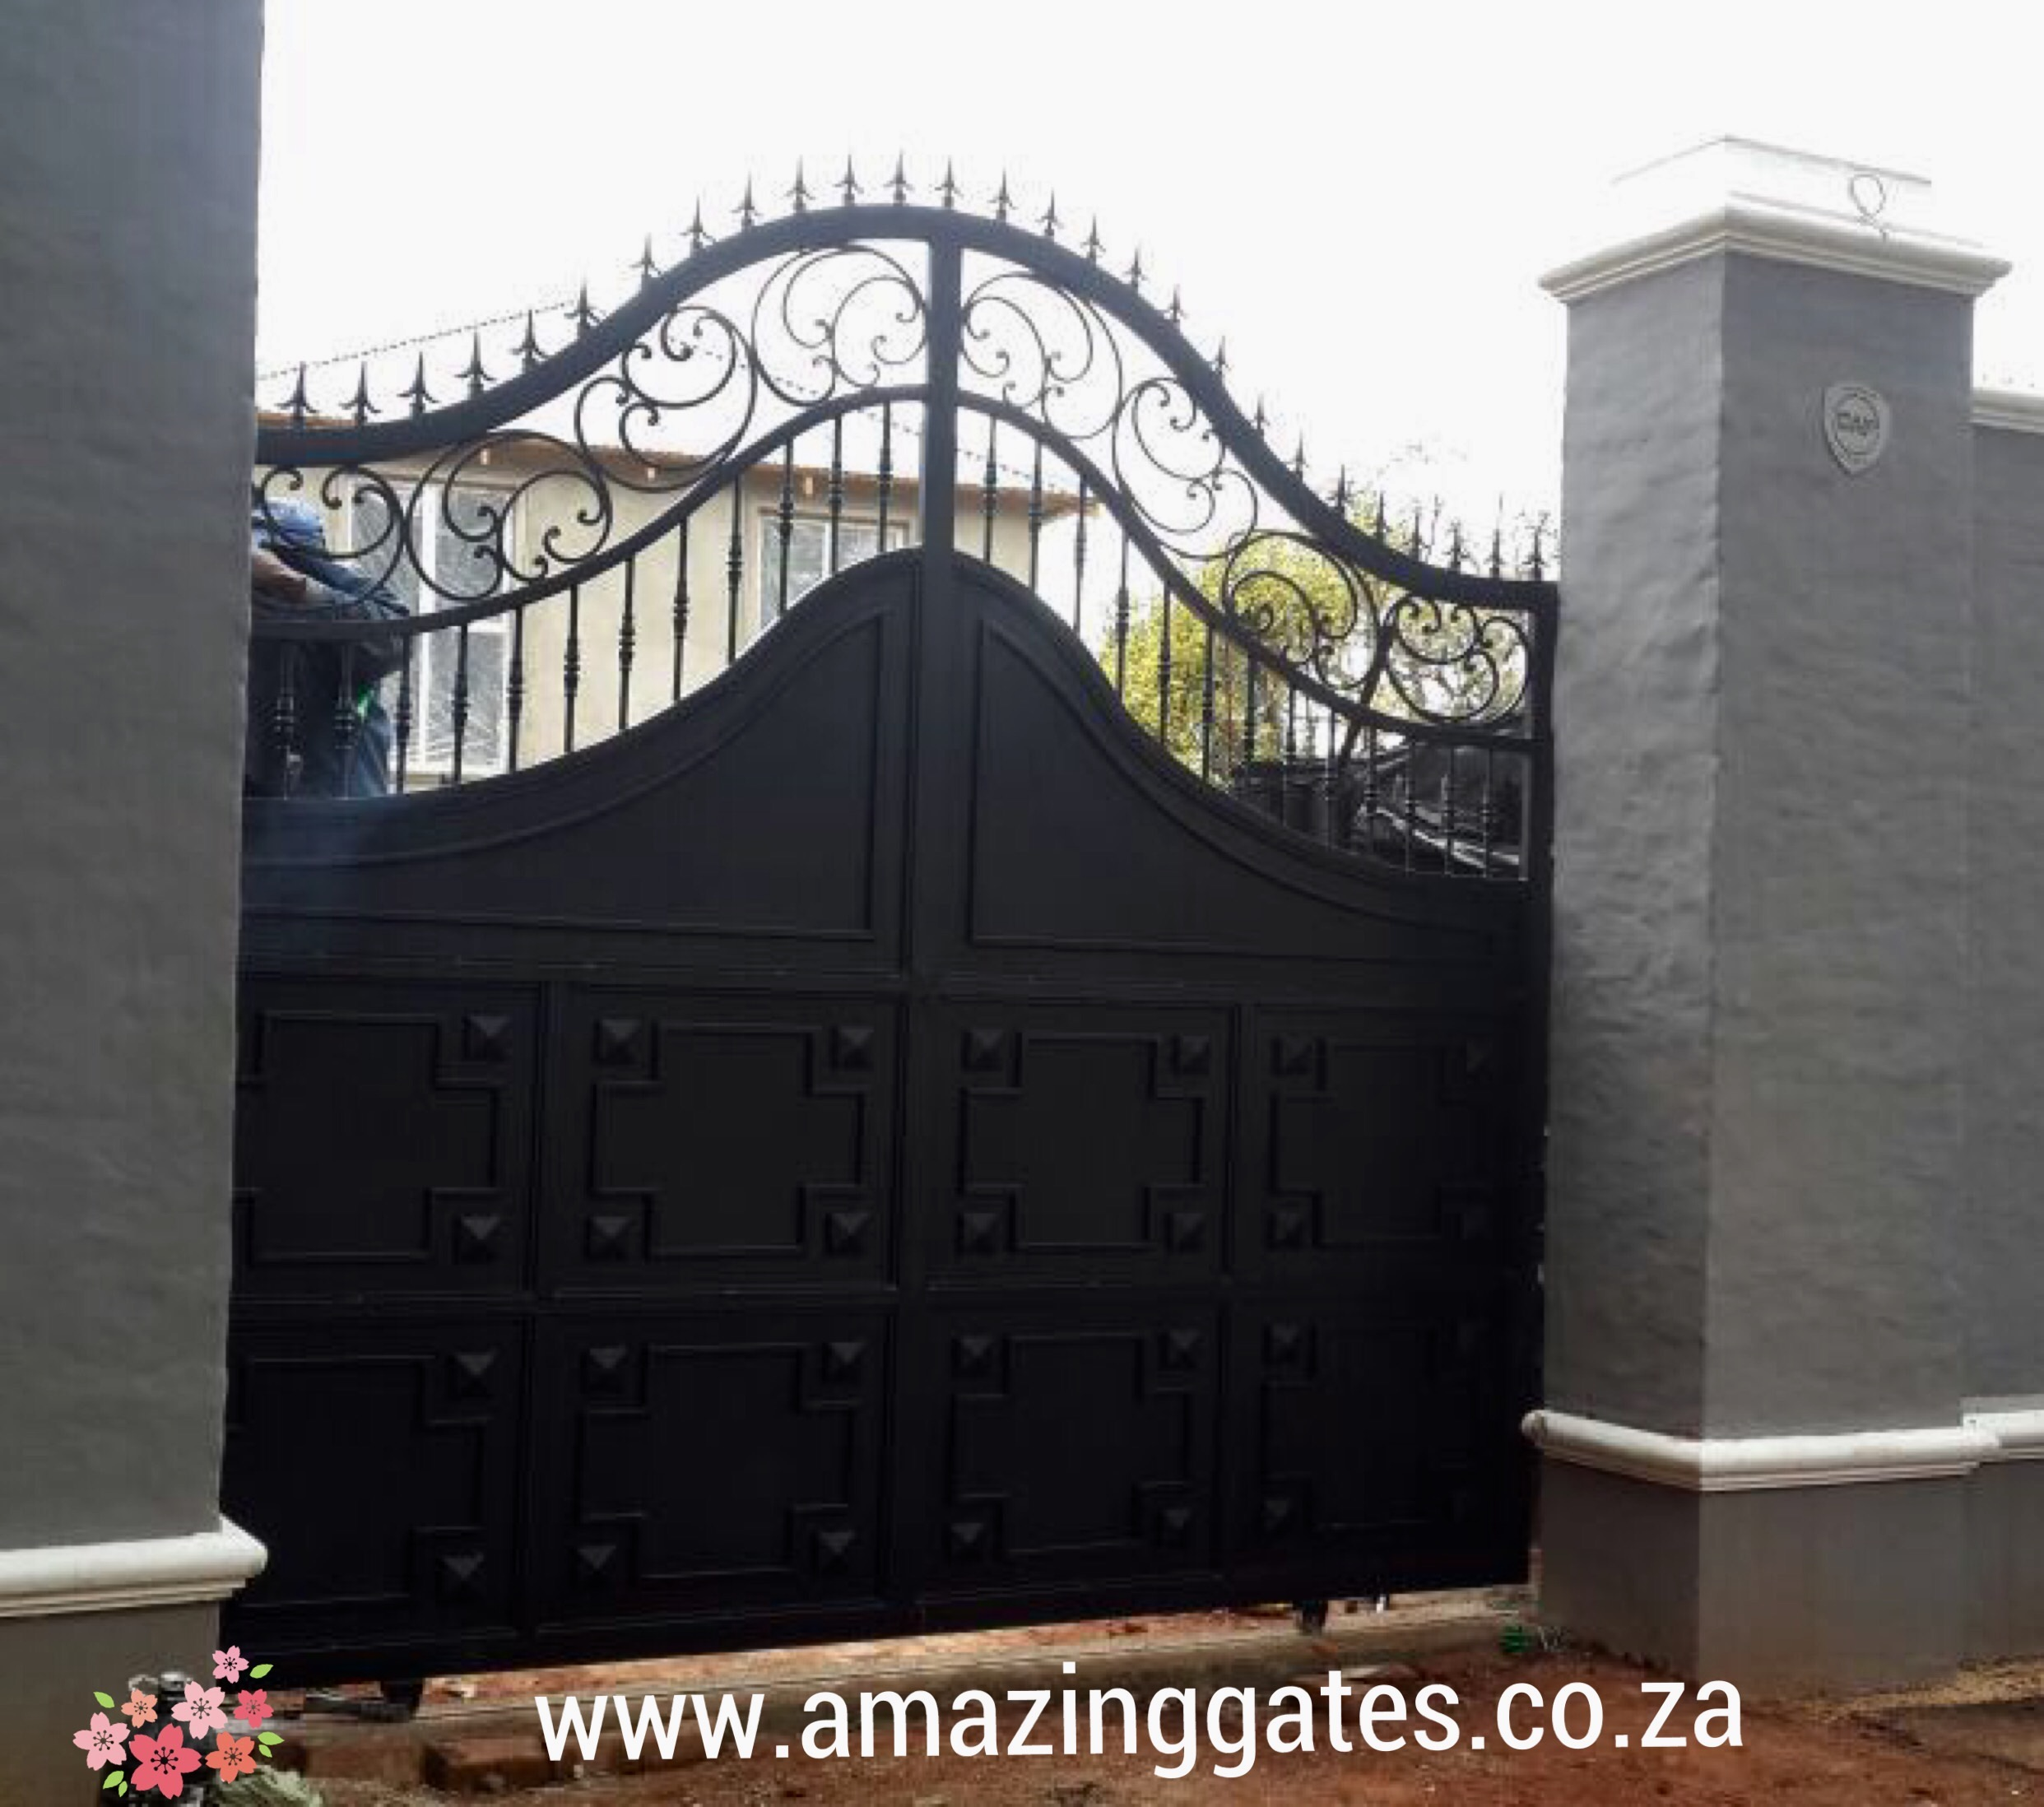 Home Design Gate Ideas: GATE DESIGNS IN SOUTH AFRICA